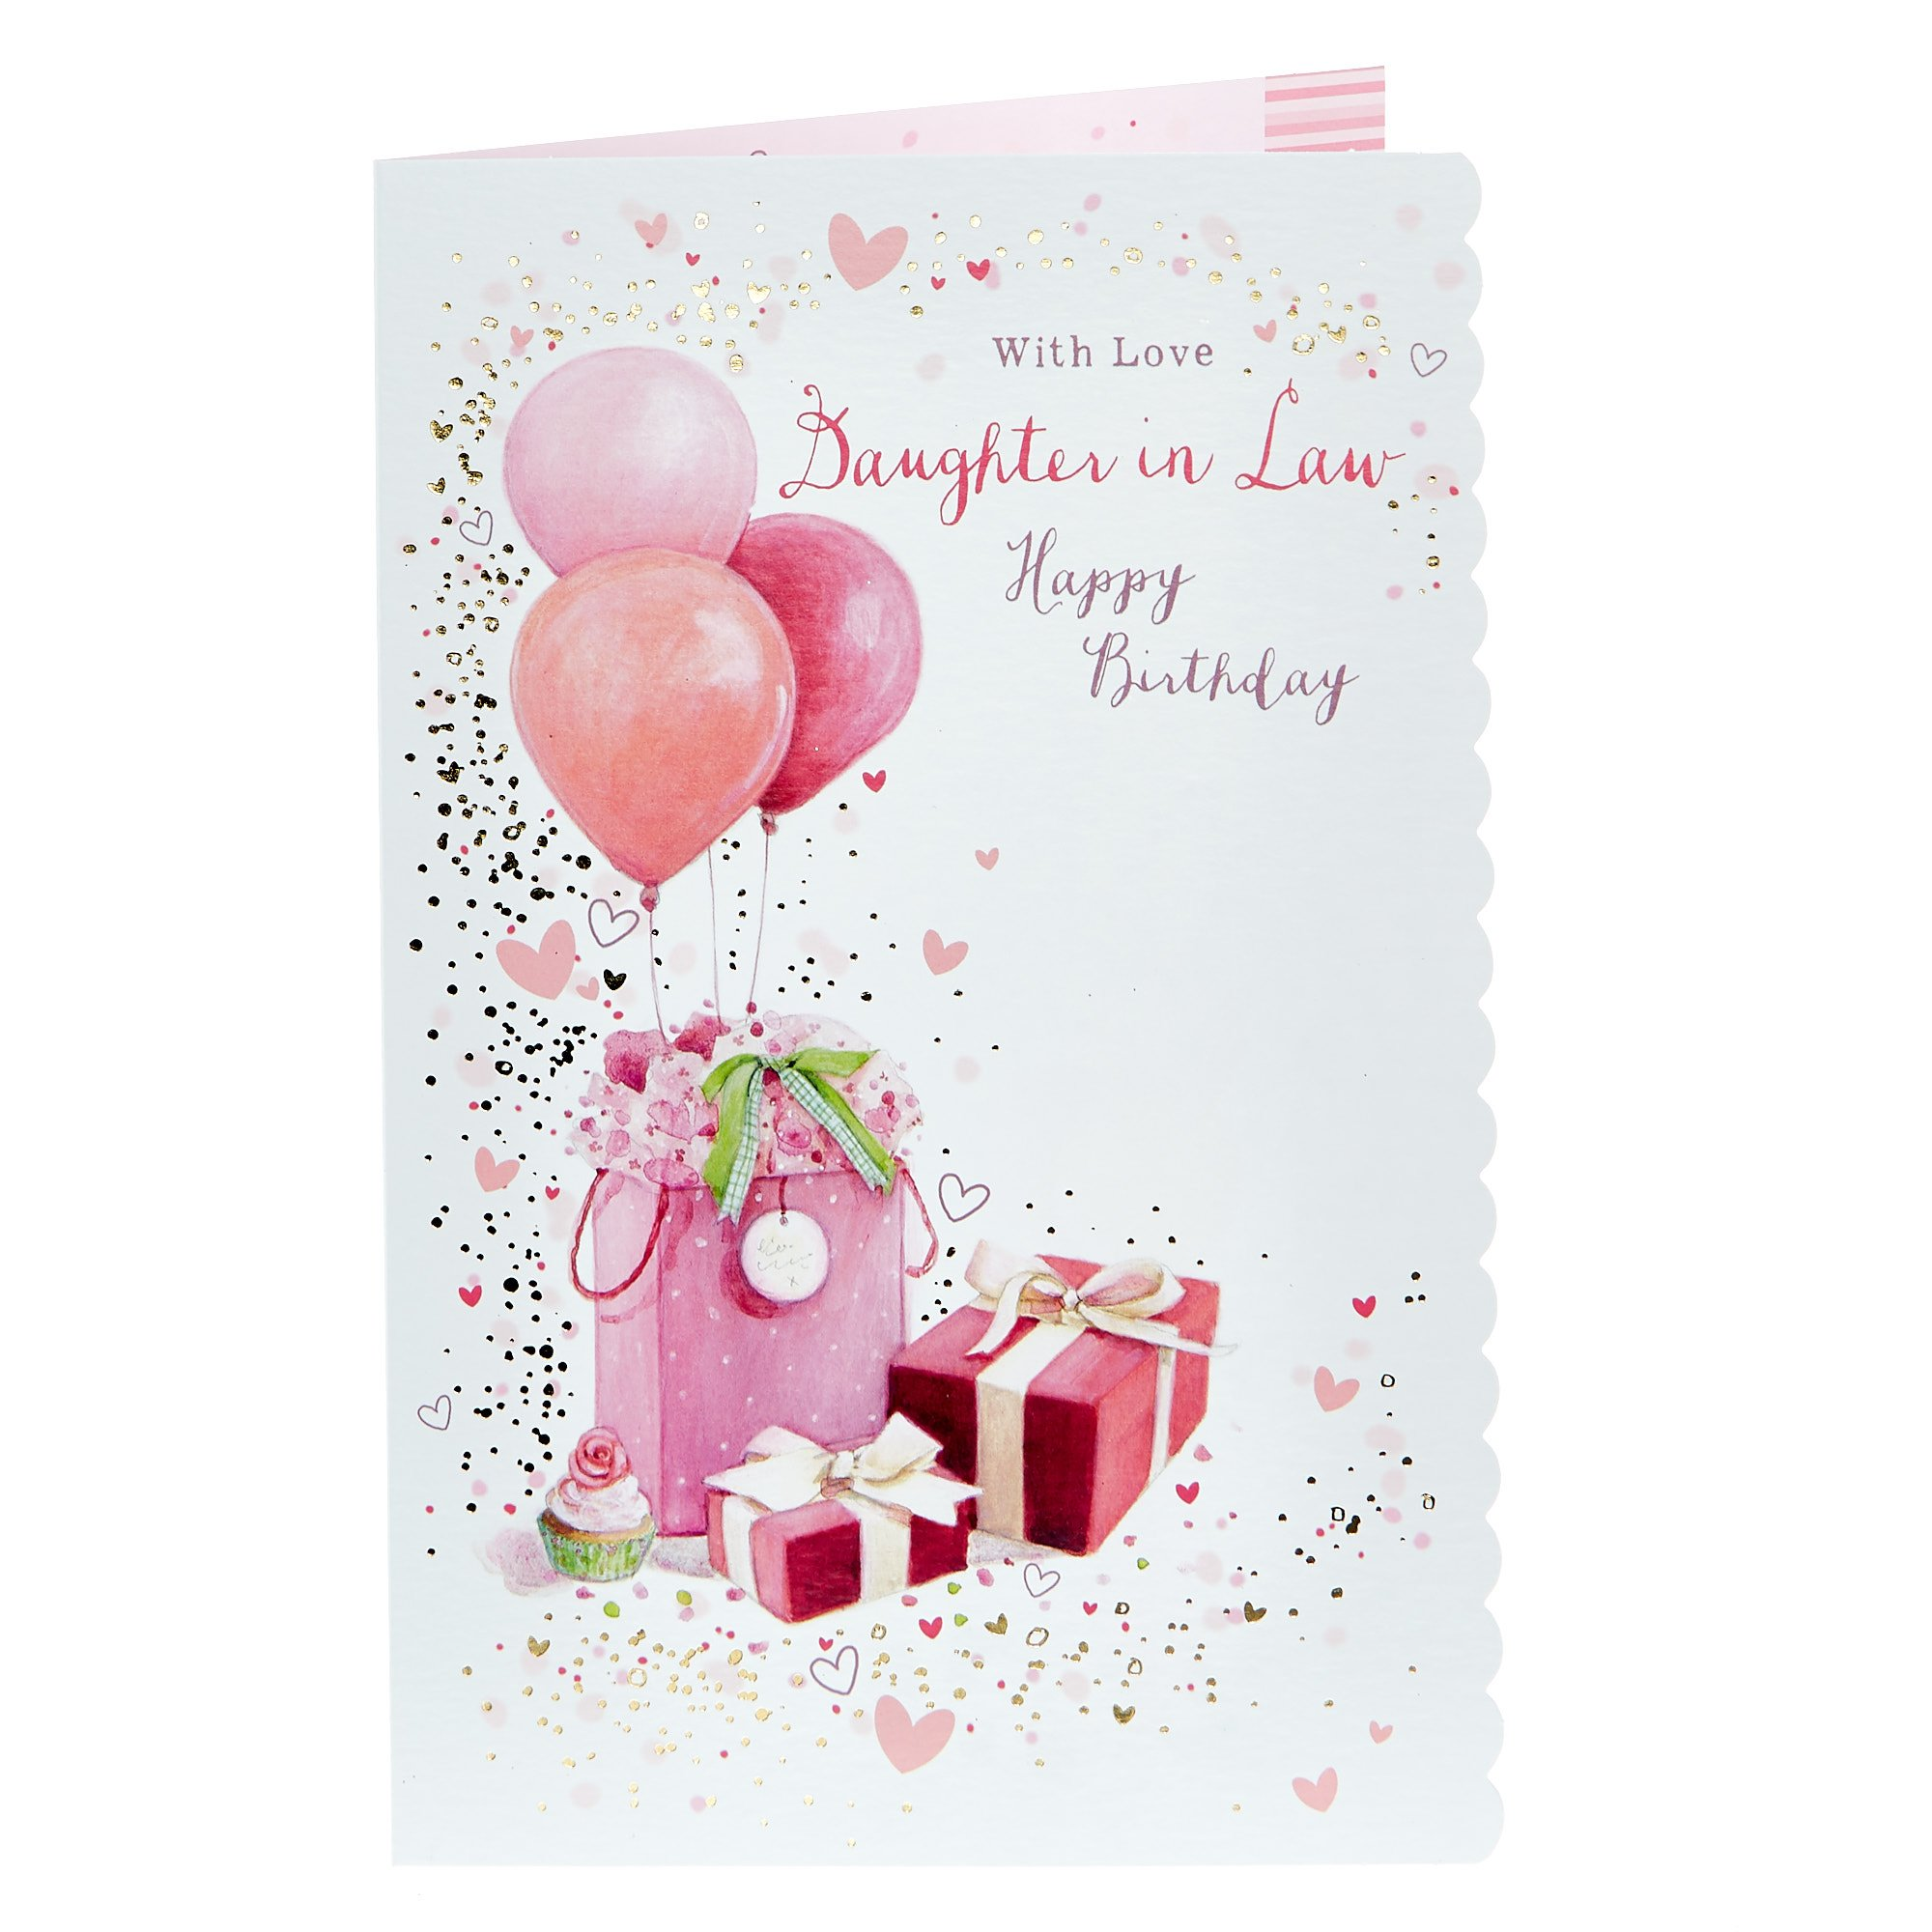 buy birthday card  with love daughter in law for gbp 099